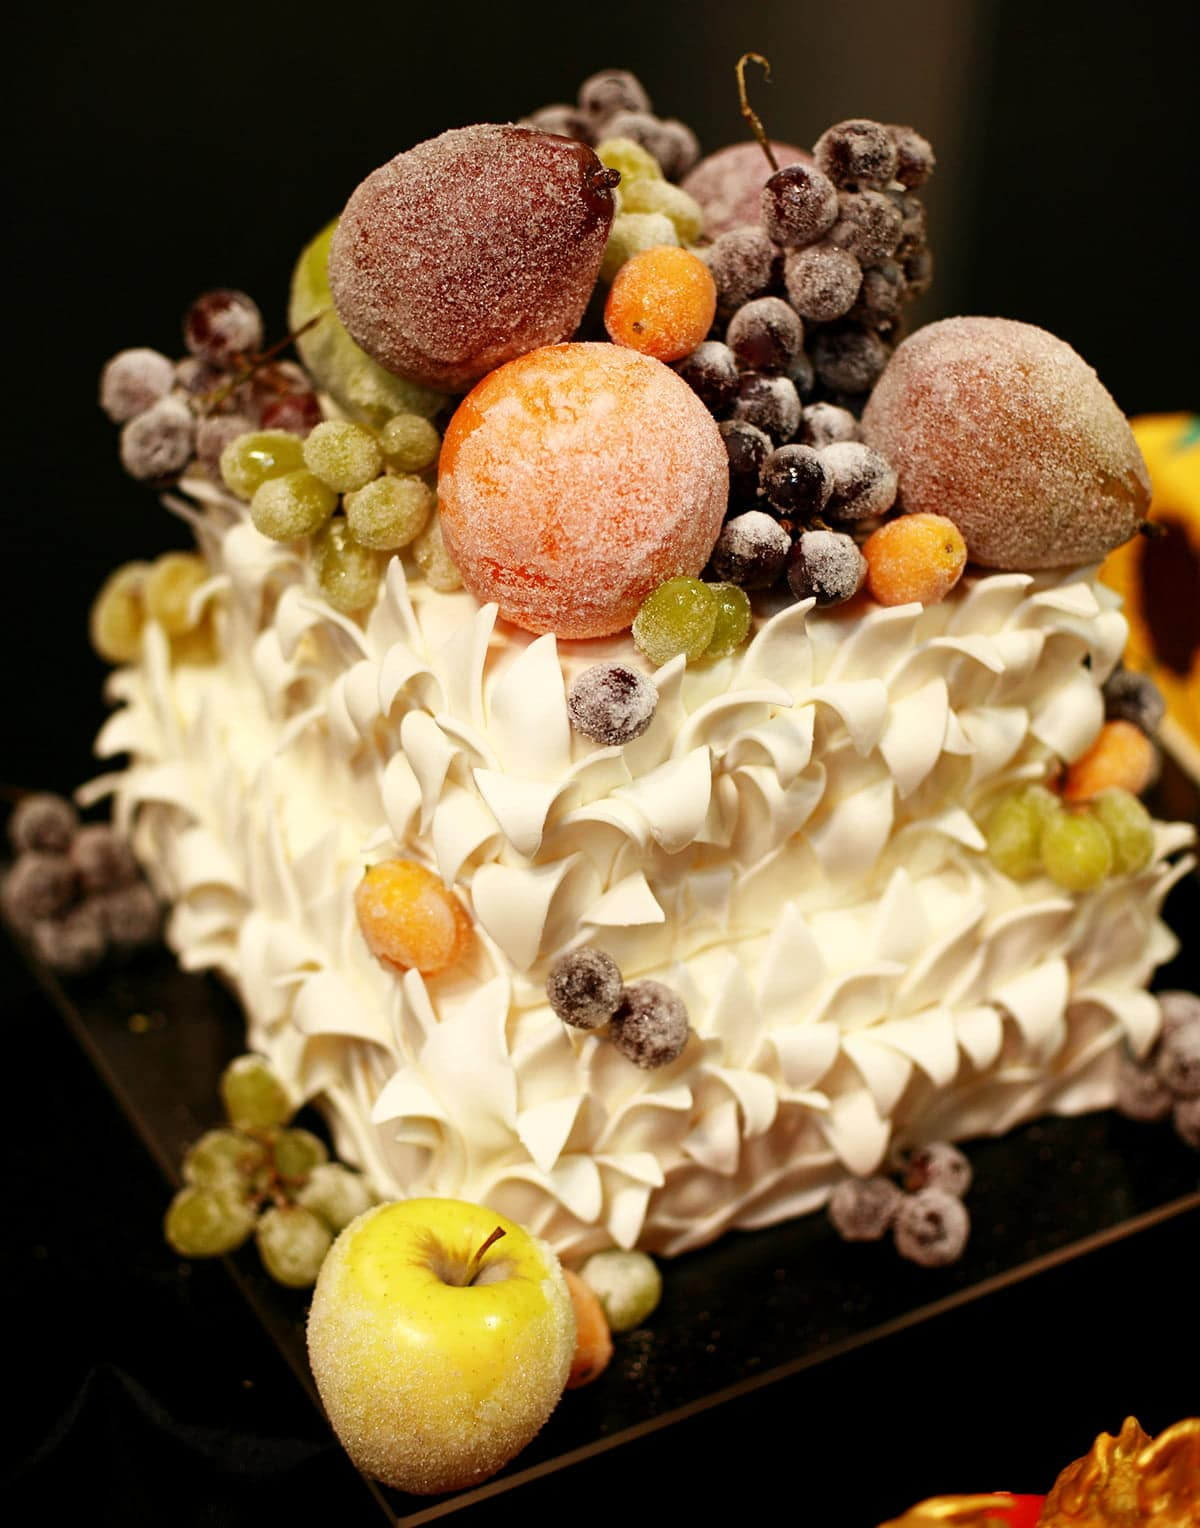 A two layered square cake.  The sides are covered in white leaves that are curling downward, and it's topped with a variety of sugar coated fruit.